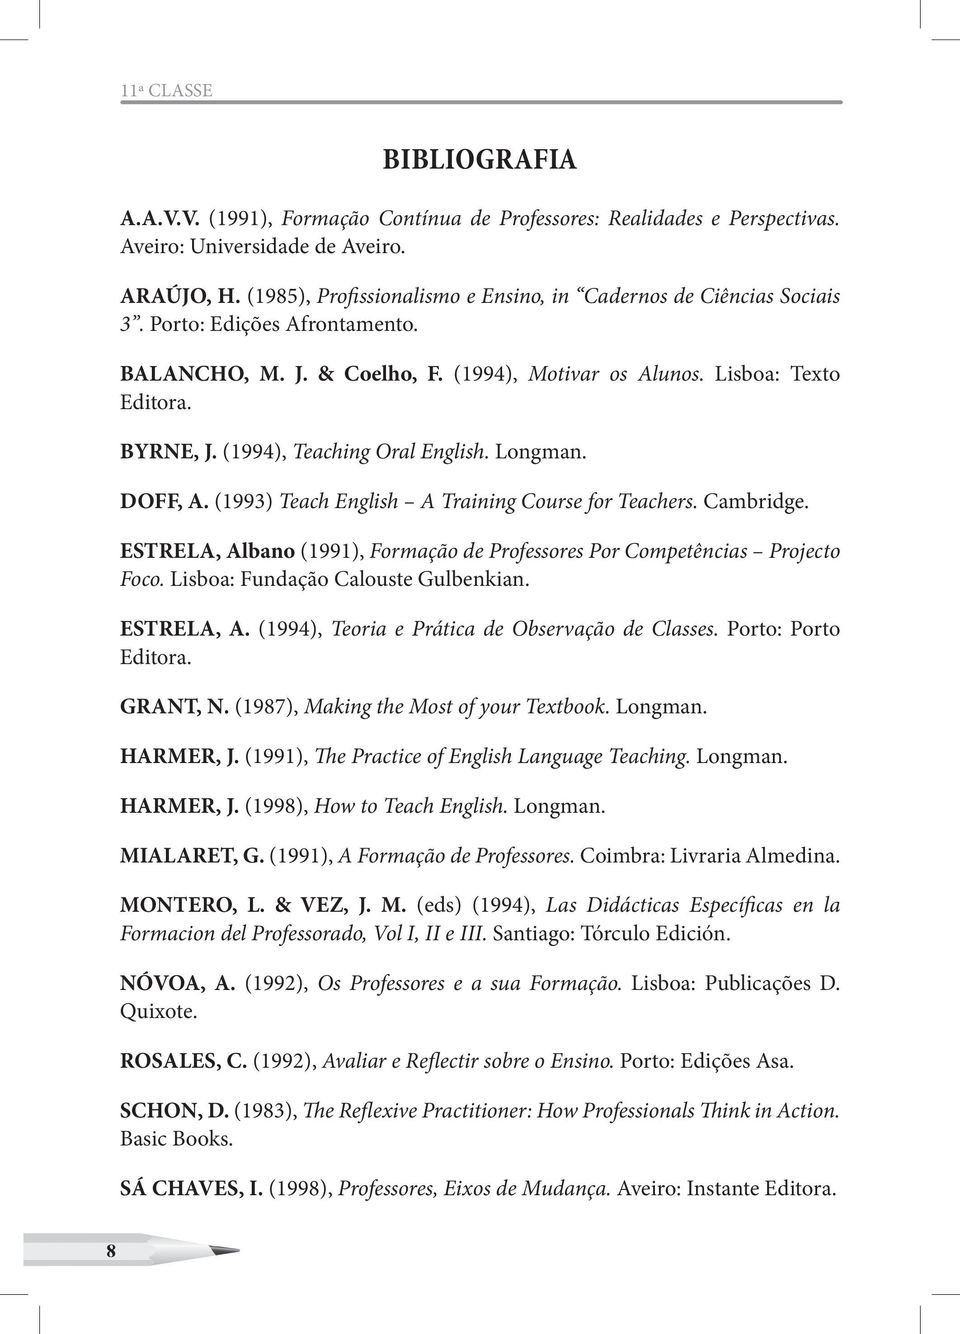 (1994), Teaching Oral English. Longman. DOFF, A. (1993) Teach English A Training Course for Teachers. Cambridge. ESTRELA, Albano (1991), Formação de Professores Por Competências Projecto Foco.